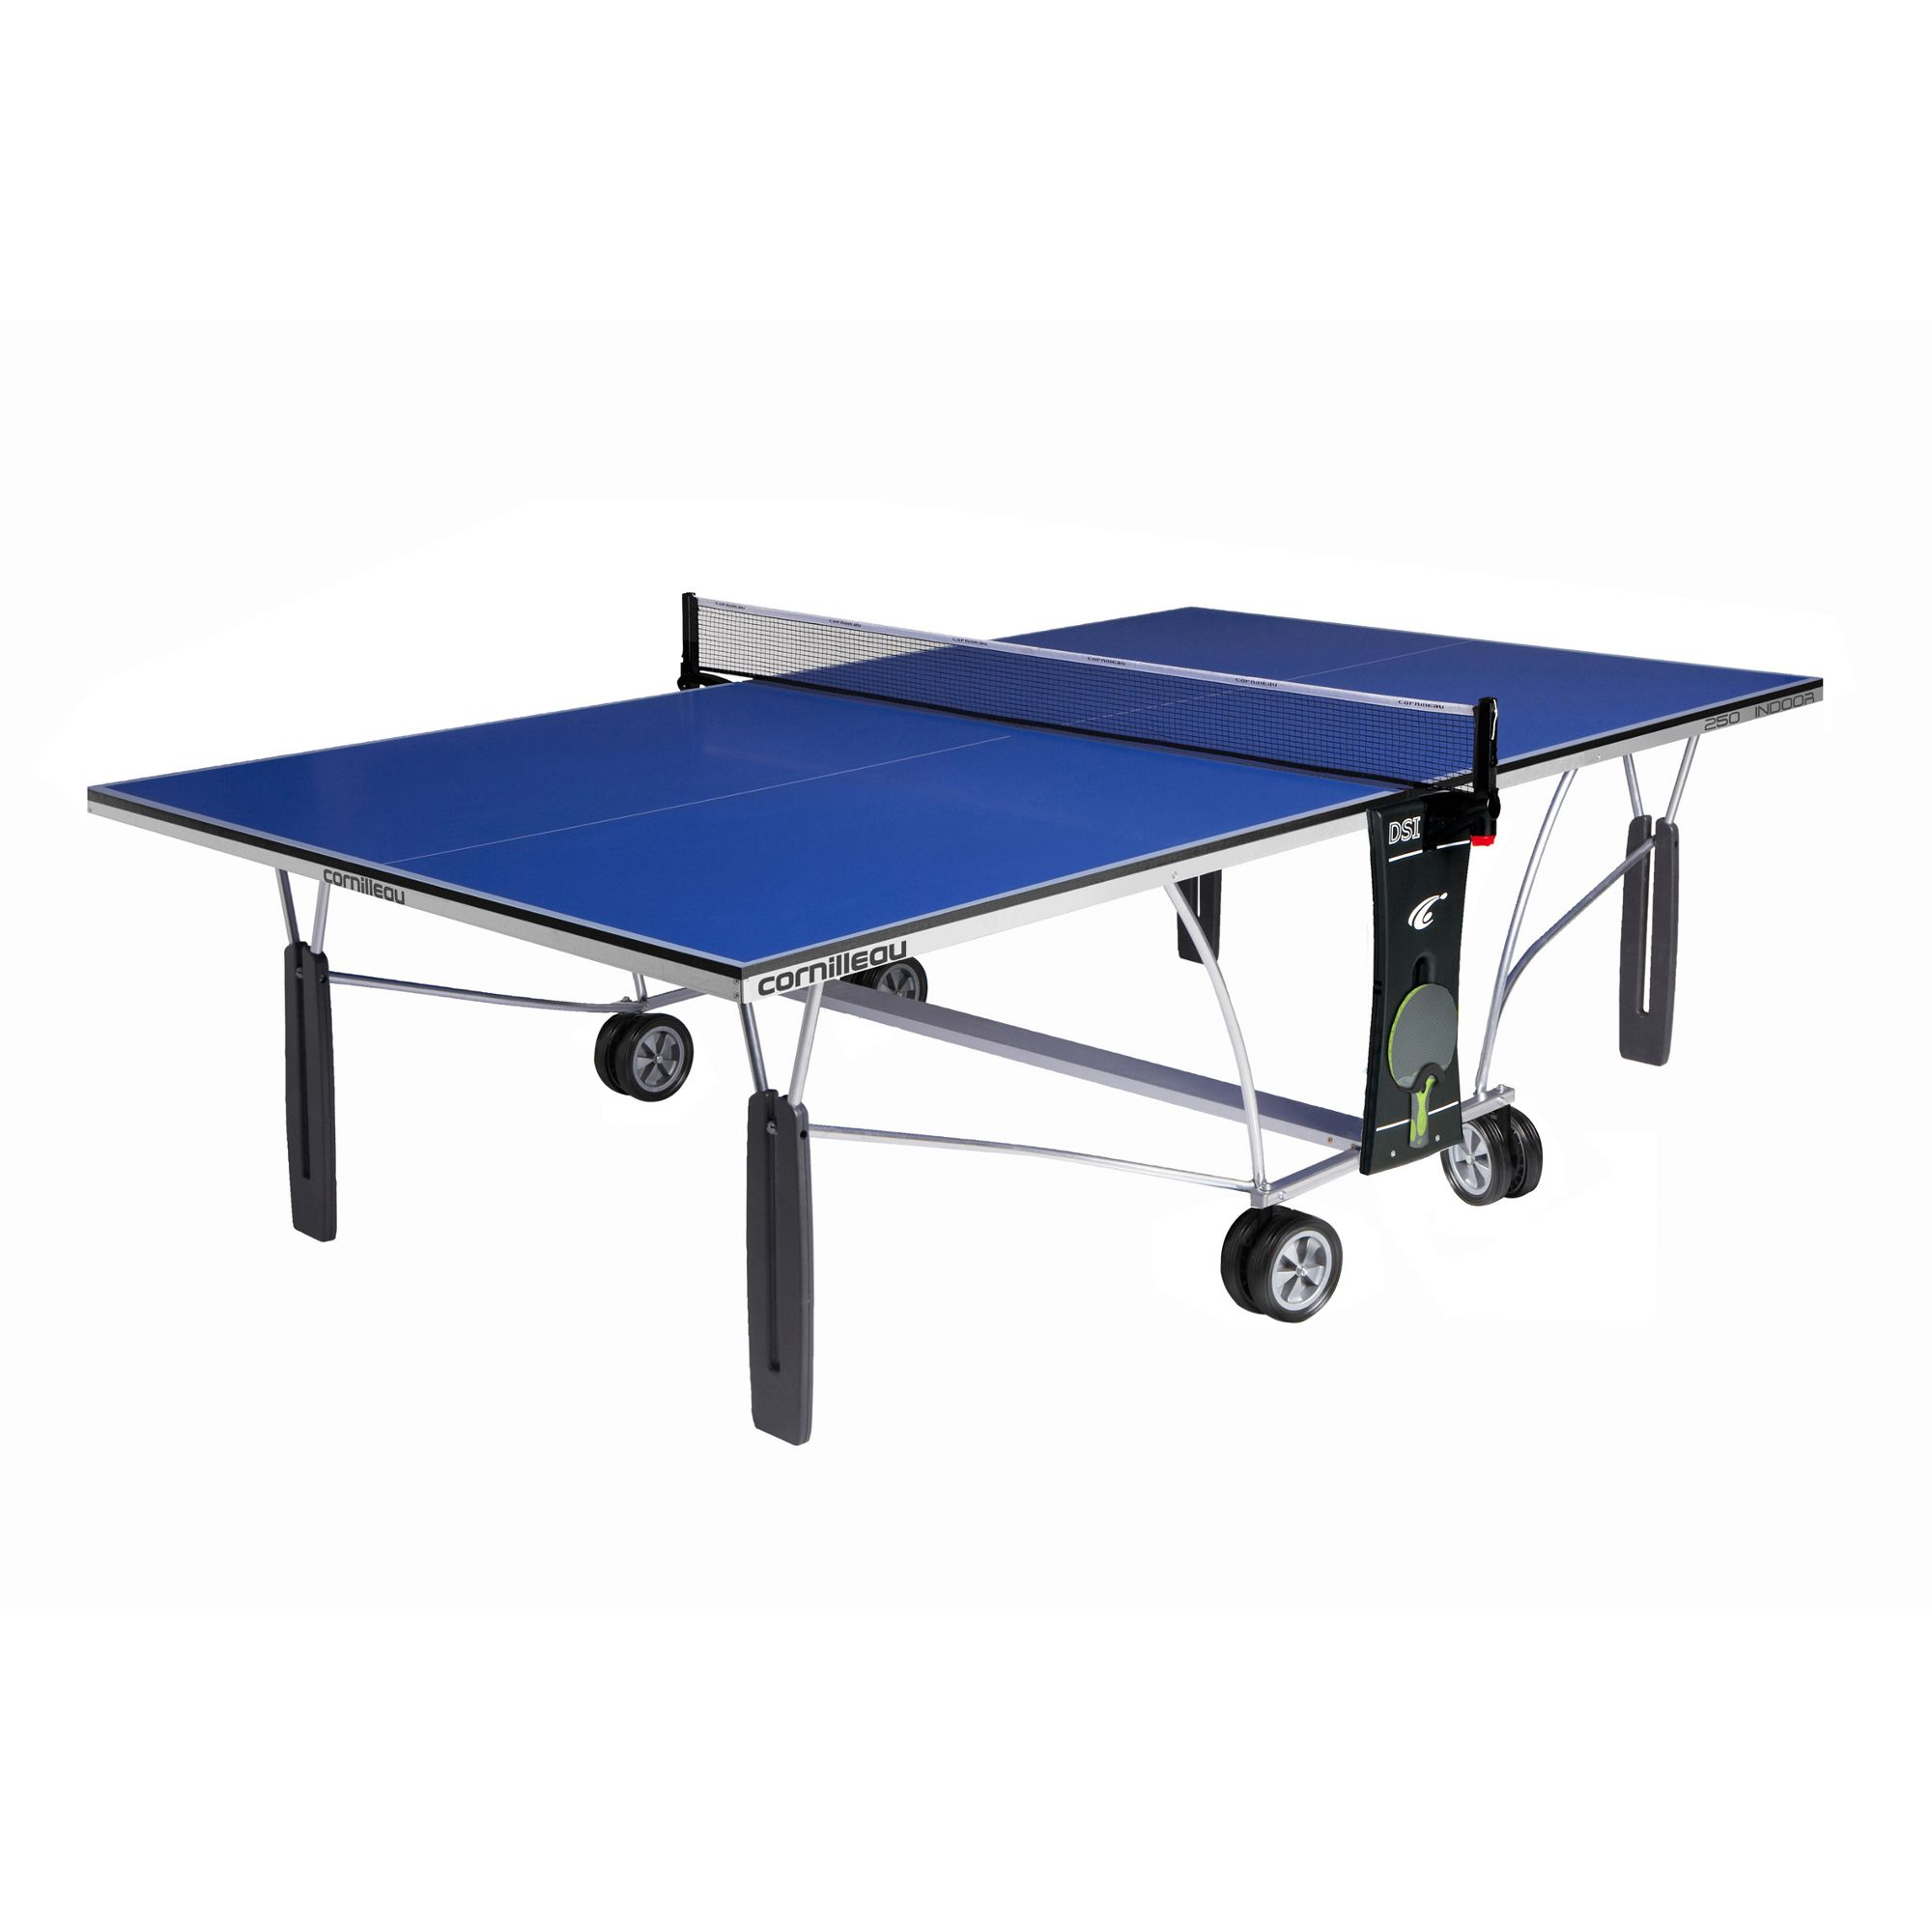 cornilleau indoor sport 250 rollaway table tennis table. Black Bedroom Furniture Sets. Home Design Ideas